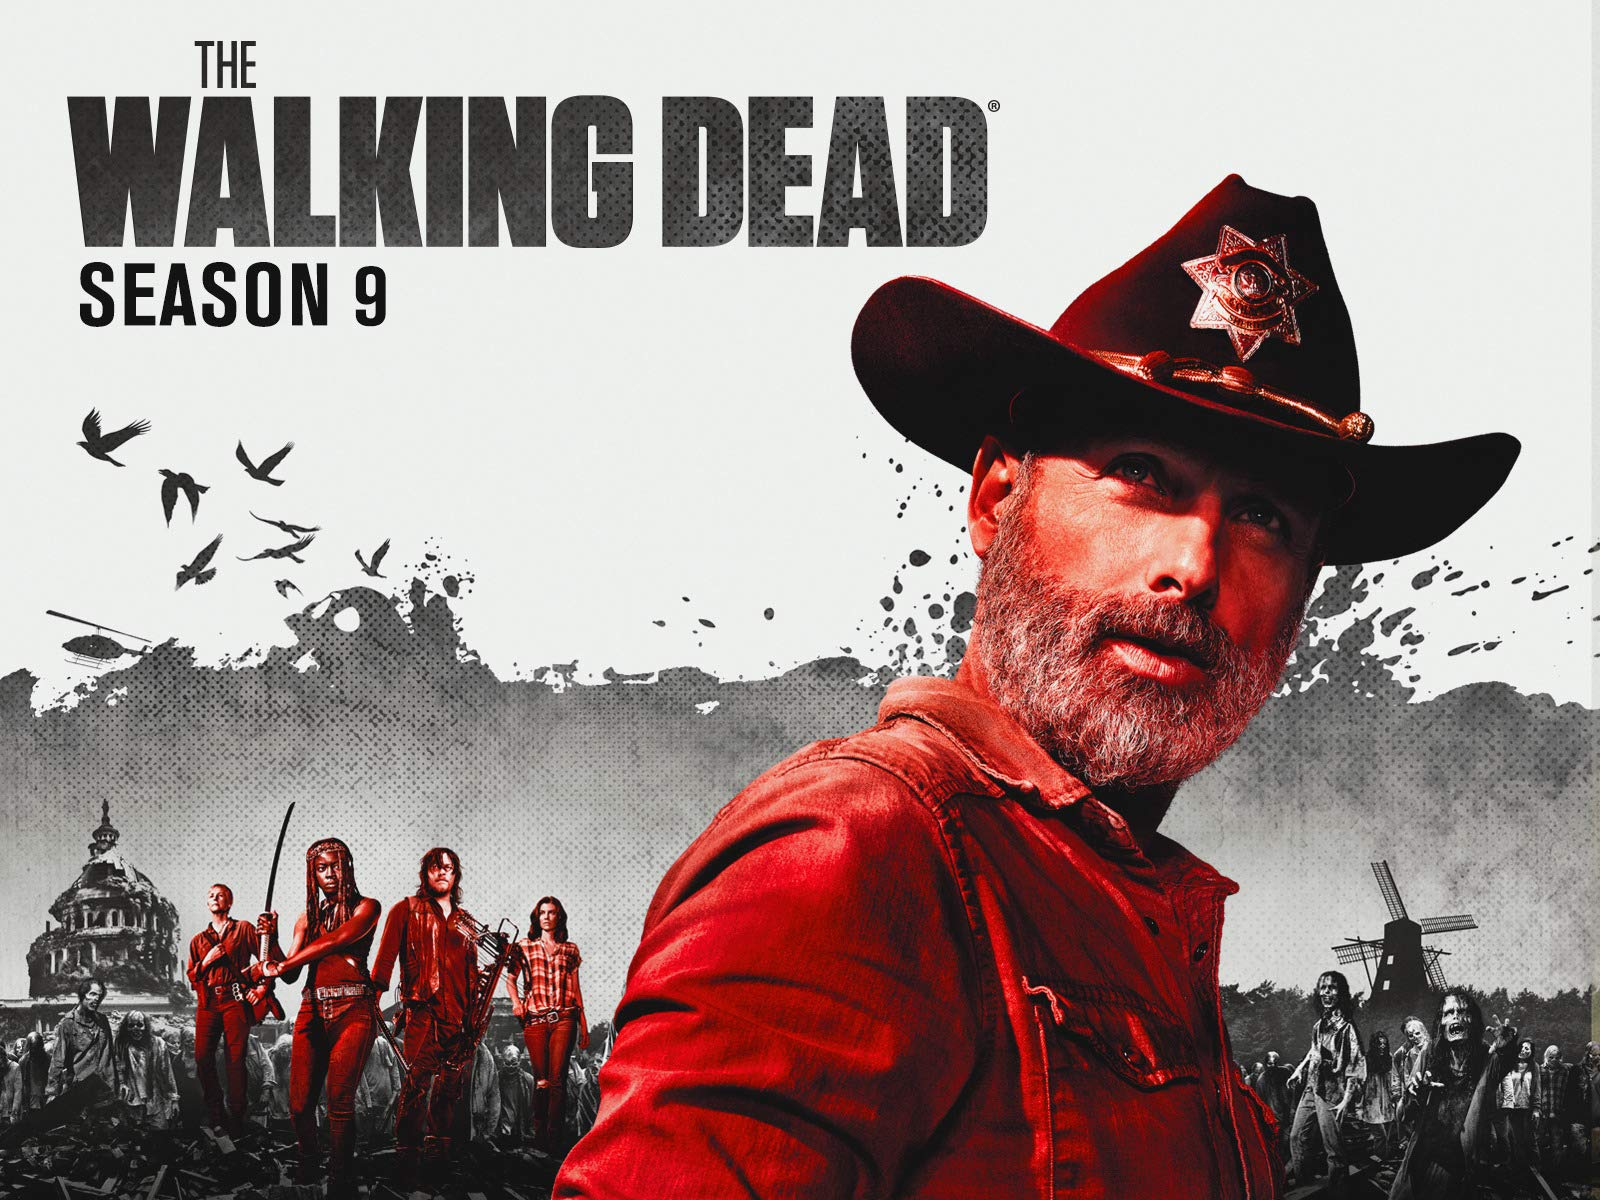 Amazon.co.uk: Watch The Walking Dead Season 9 | Prime Video